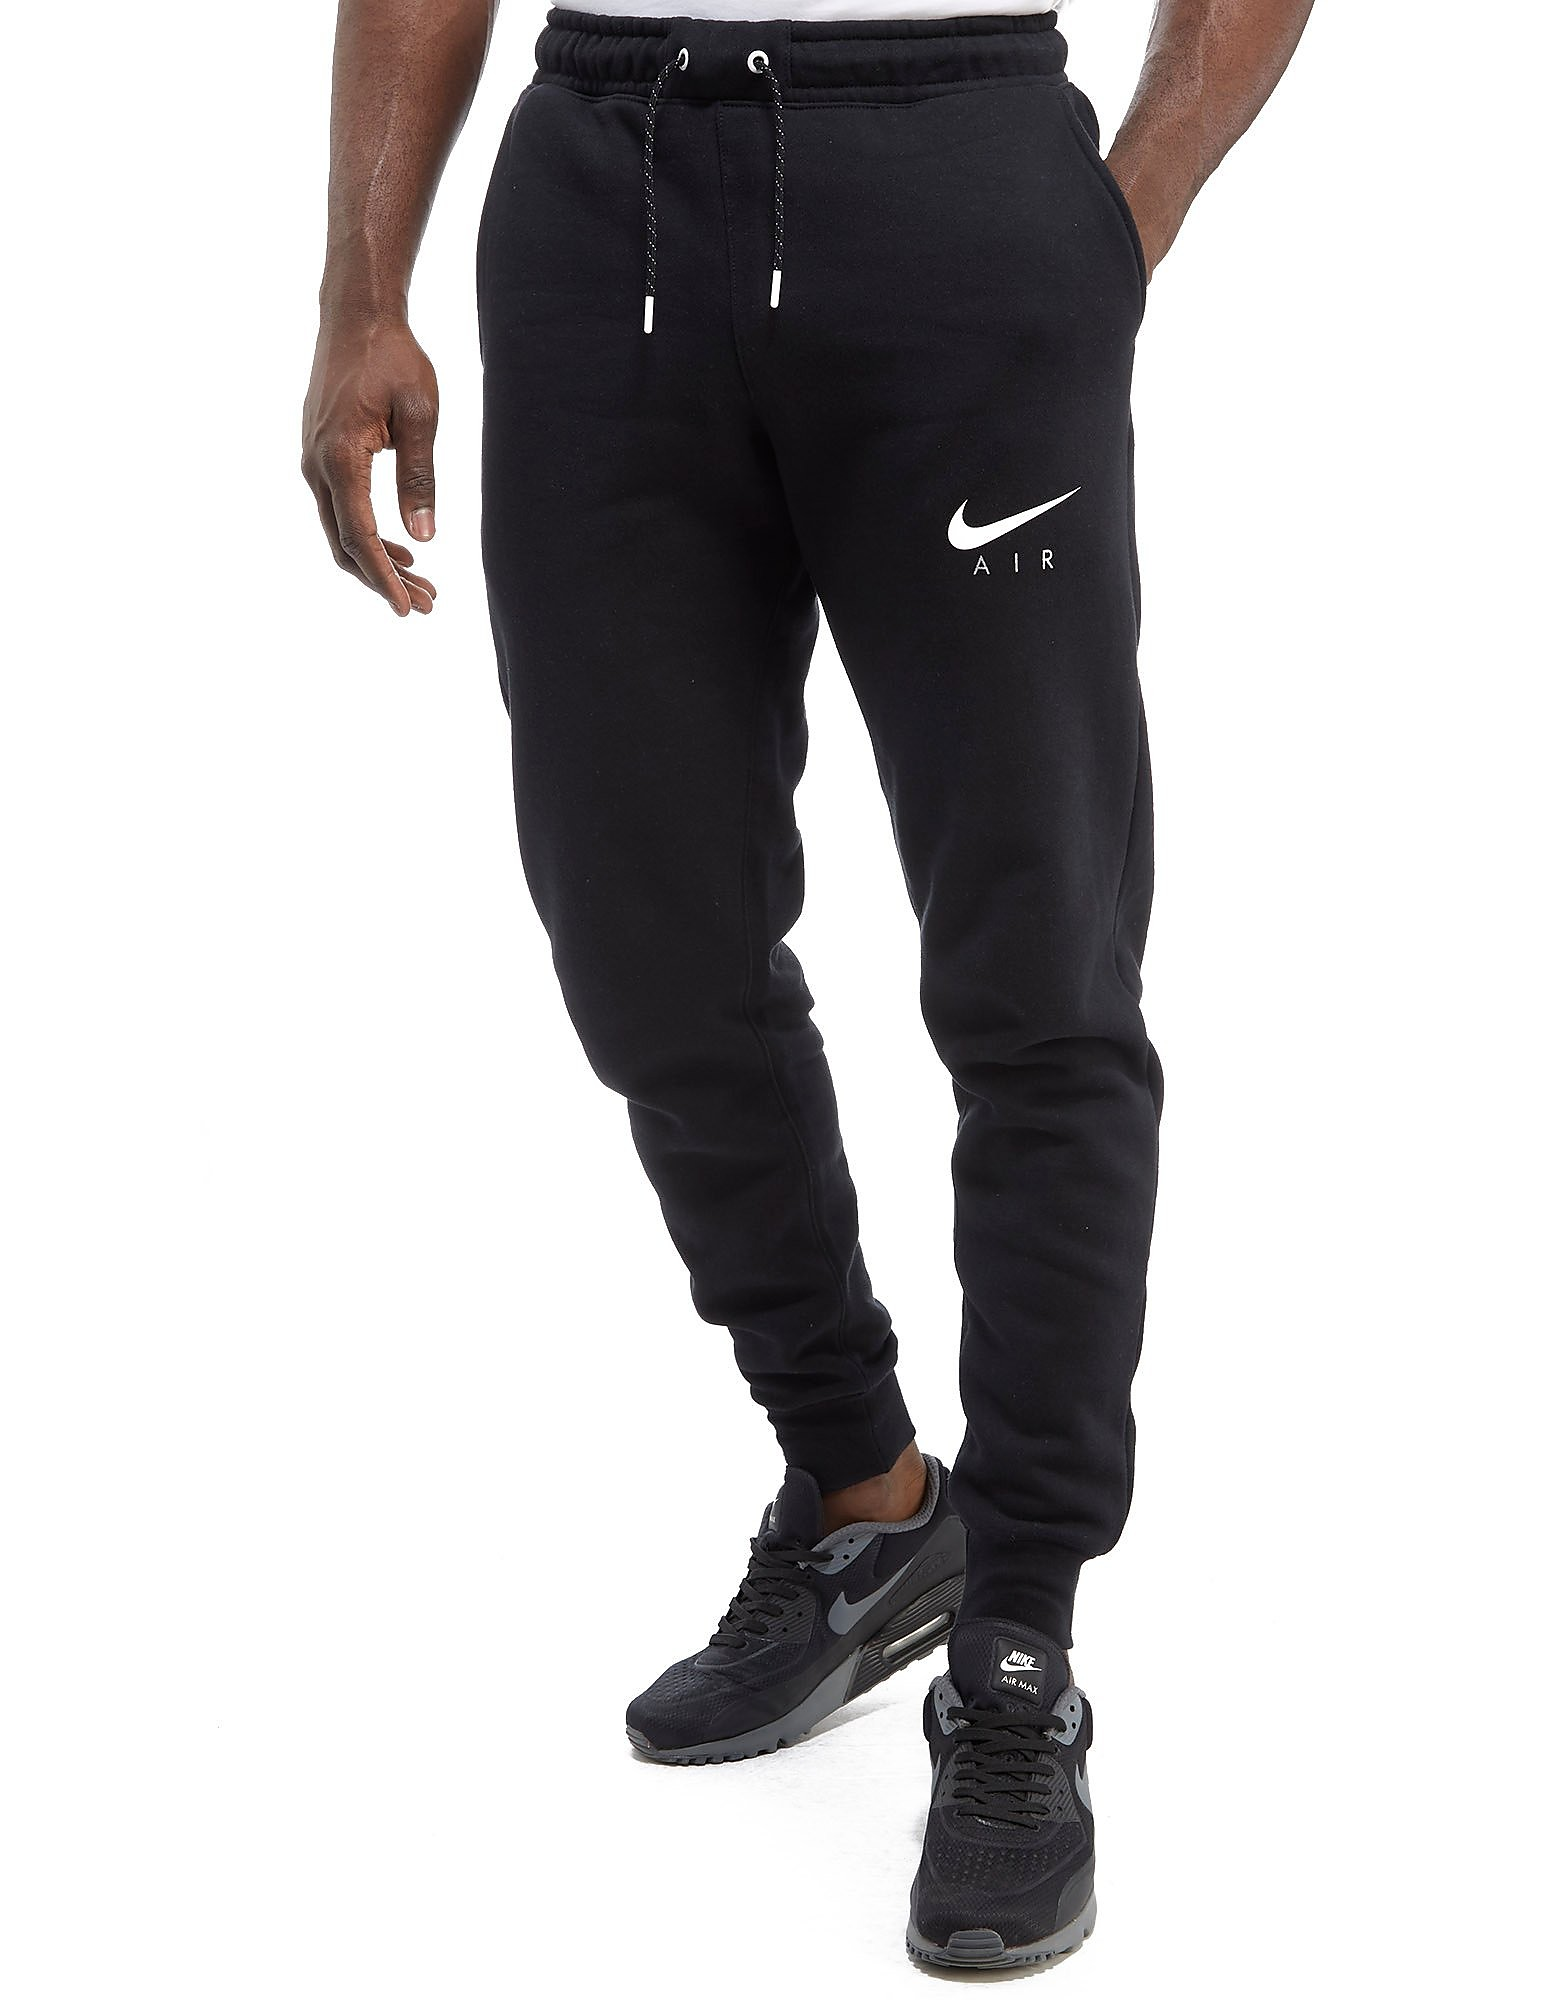 mens tracksuit bottoms jogging bottoms track pants at jd sports. Black Bedroom Furniture Sets. Home Design Ideas